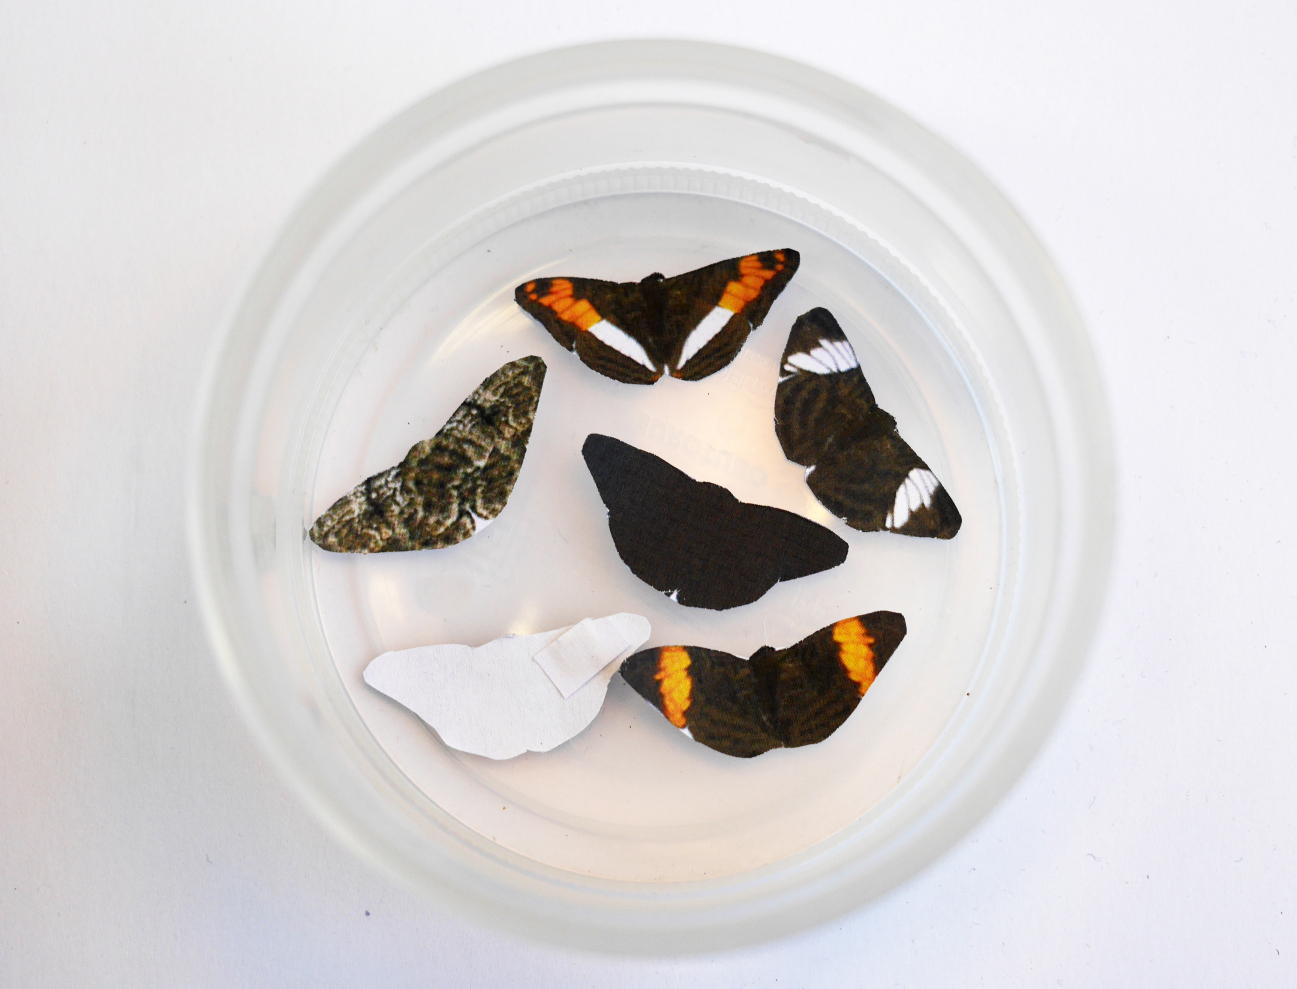 paper butterflies in dish are black, orange, white patterns